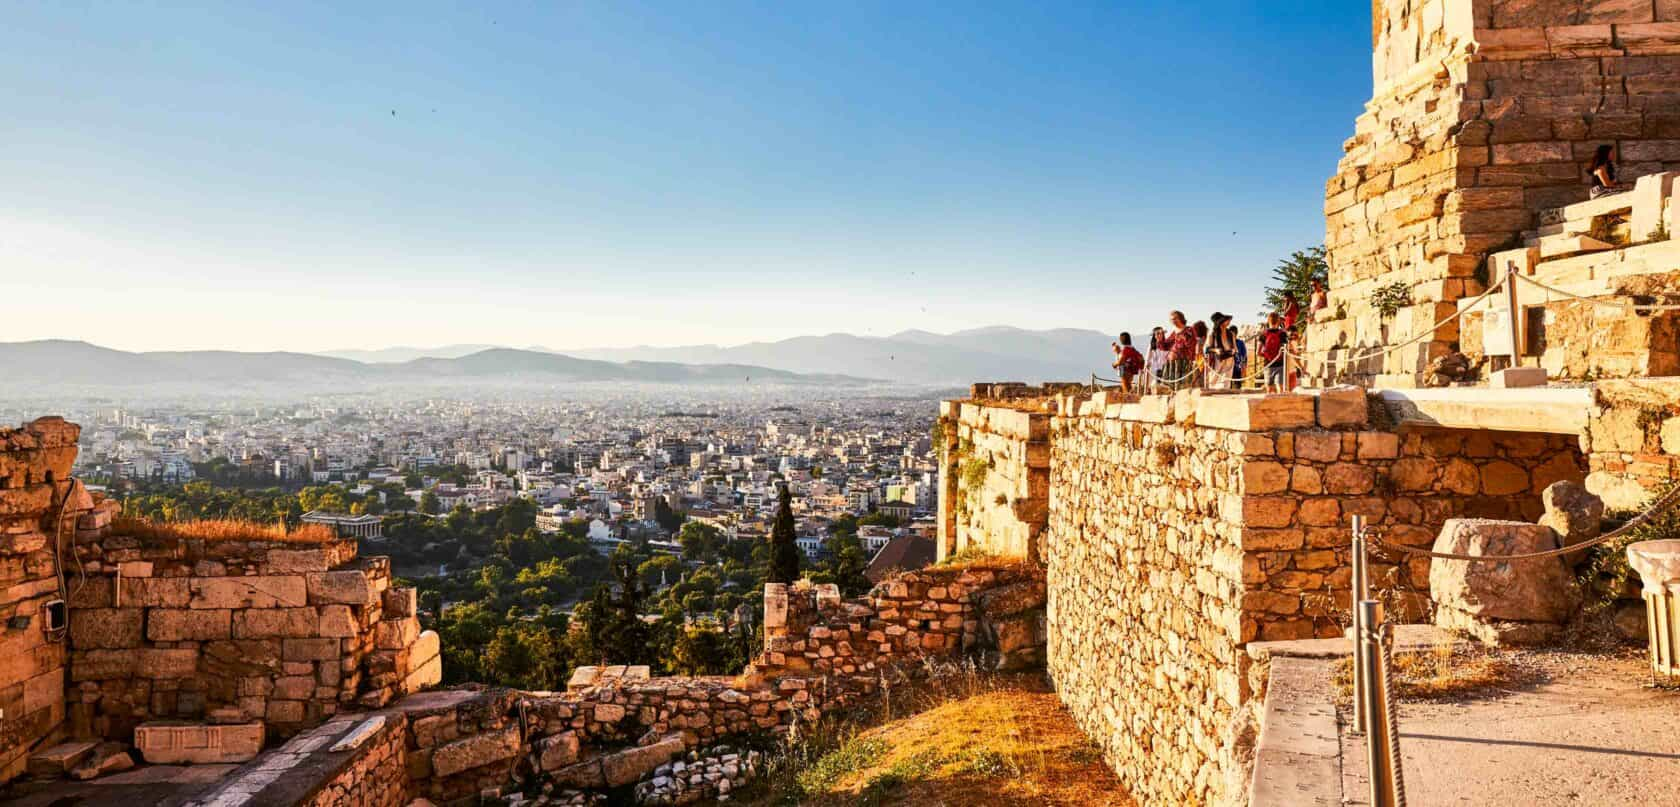 A view of Athens from a mountain.